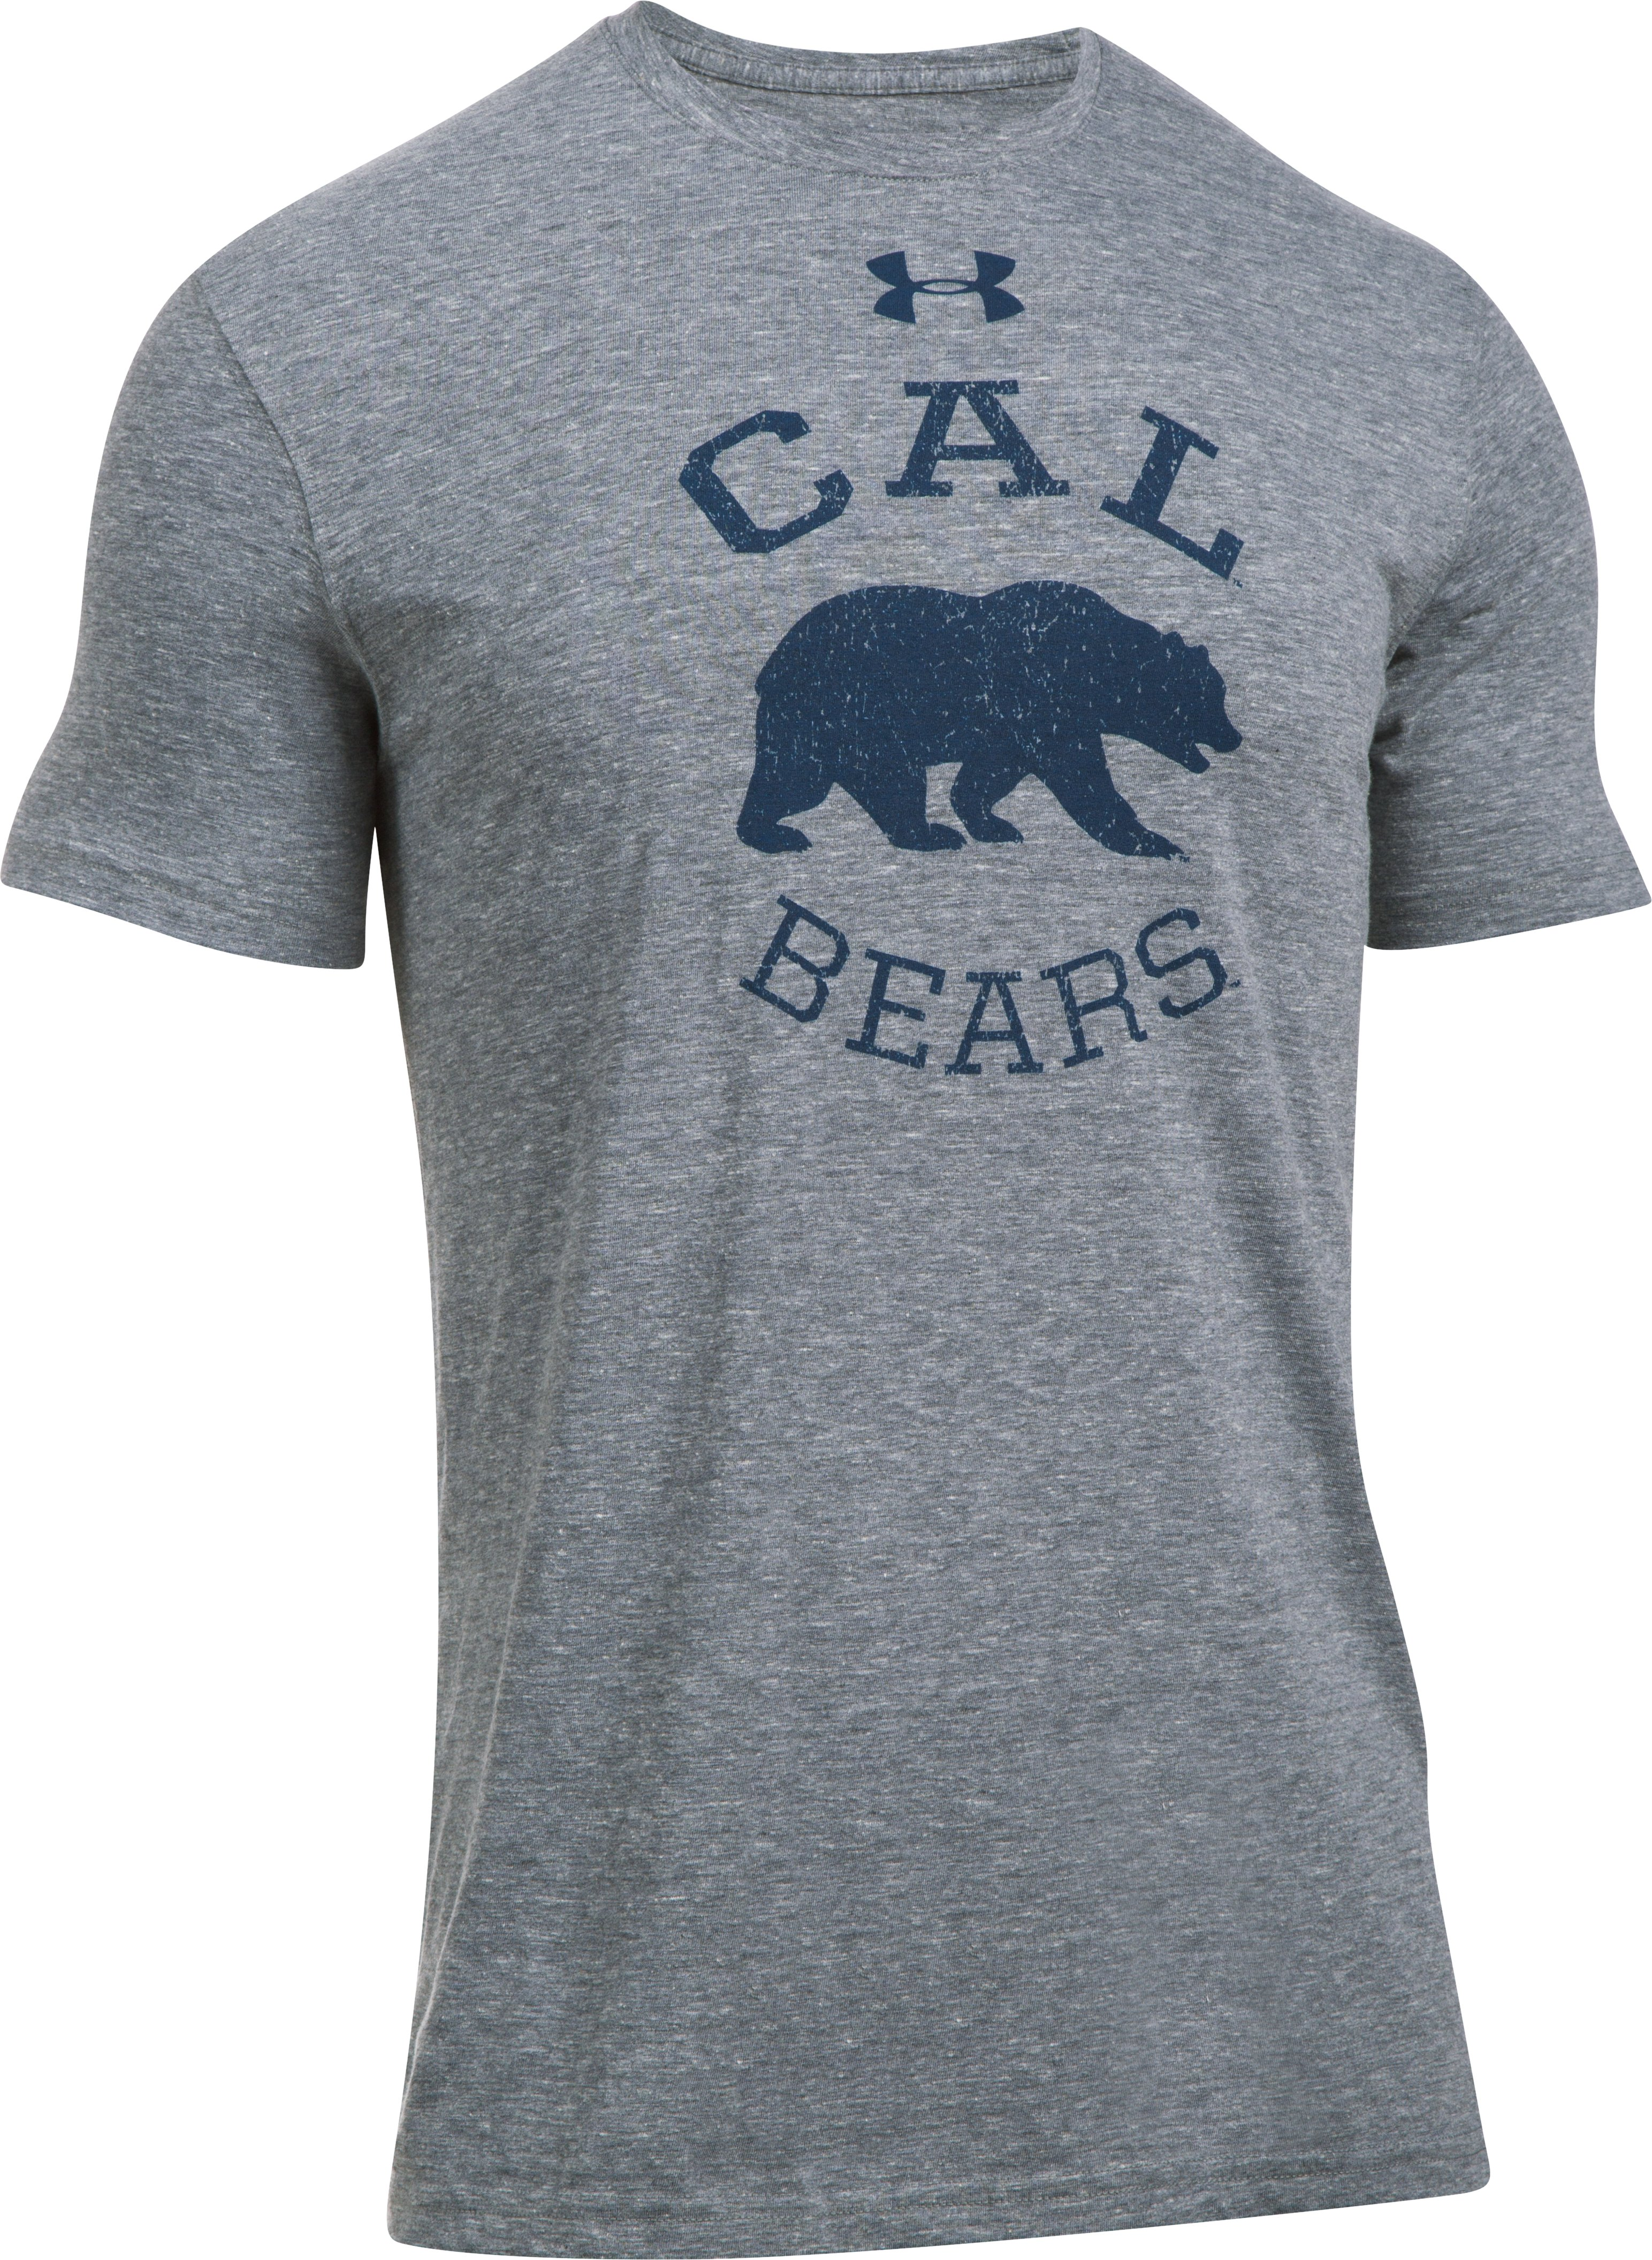 Men's Cal Bears Tri-Blend T-Shirt, True Gray Heather,